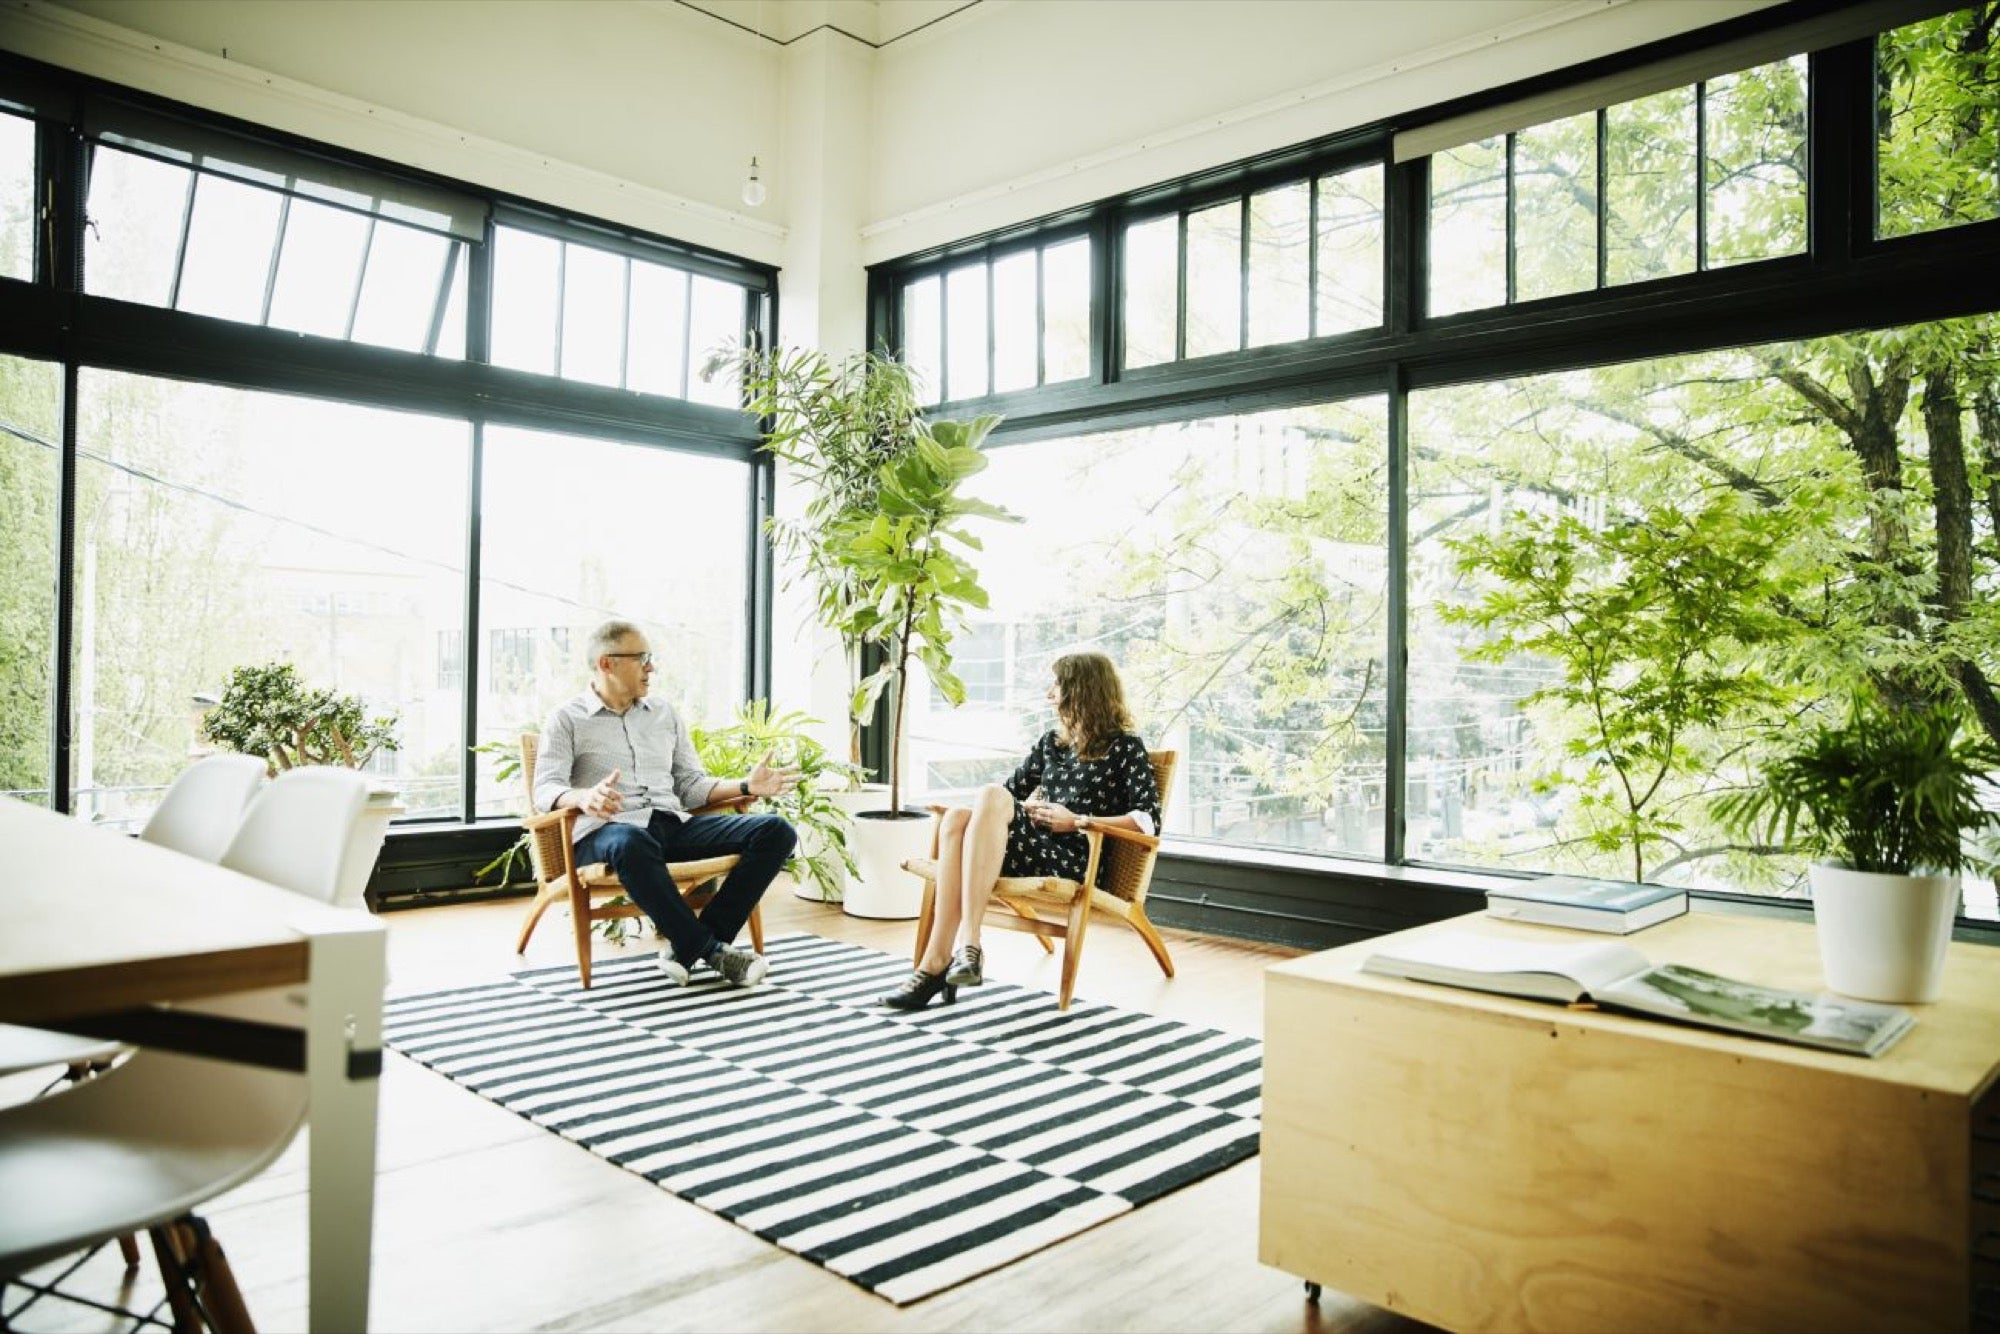 How To Add Plants To An Office To Make Employees More Focused And Productive